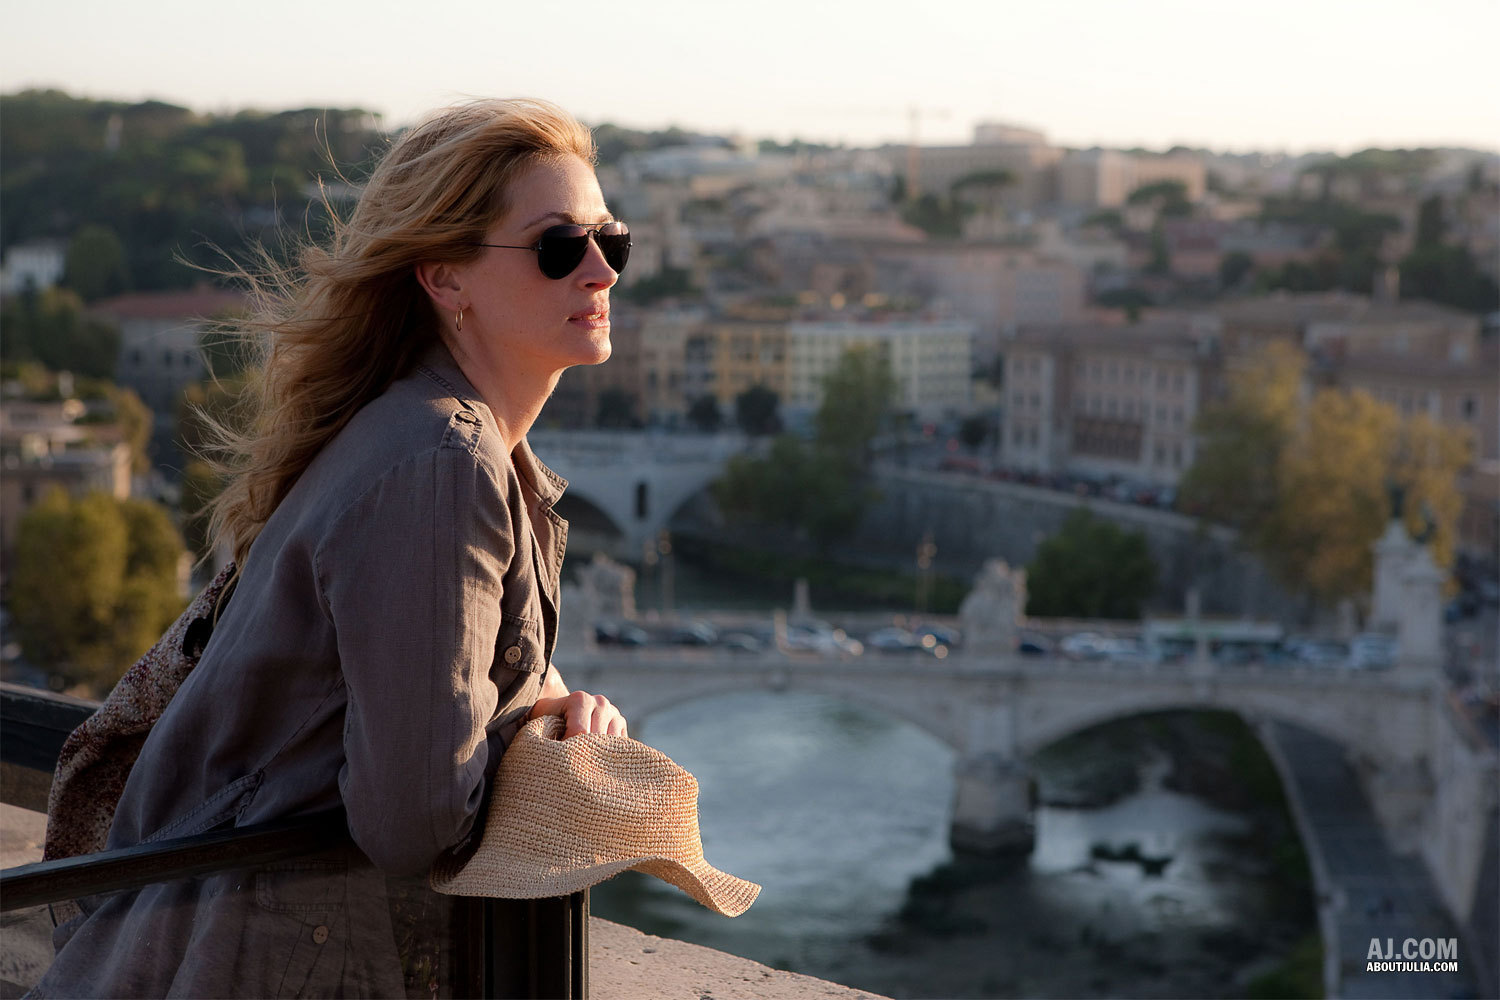 http://3.bp.blogspot.com/_H9o6h2XoB5Y/TGoJeincOXI/AAAAAAAACHs/tHaa--6hBfA/s1600/Eat-Pray-Love-Movie-Stills-julia-roberts-9634601-1500-1000.jpg